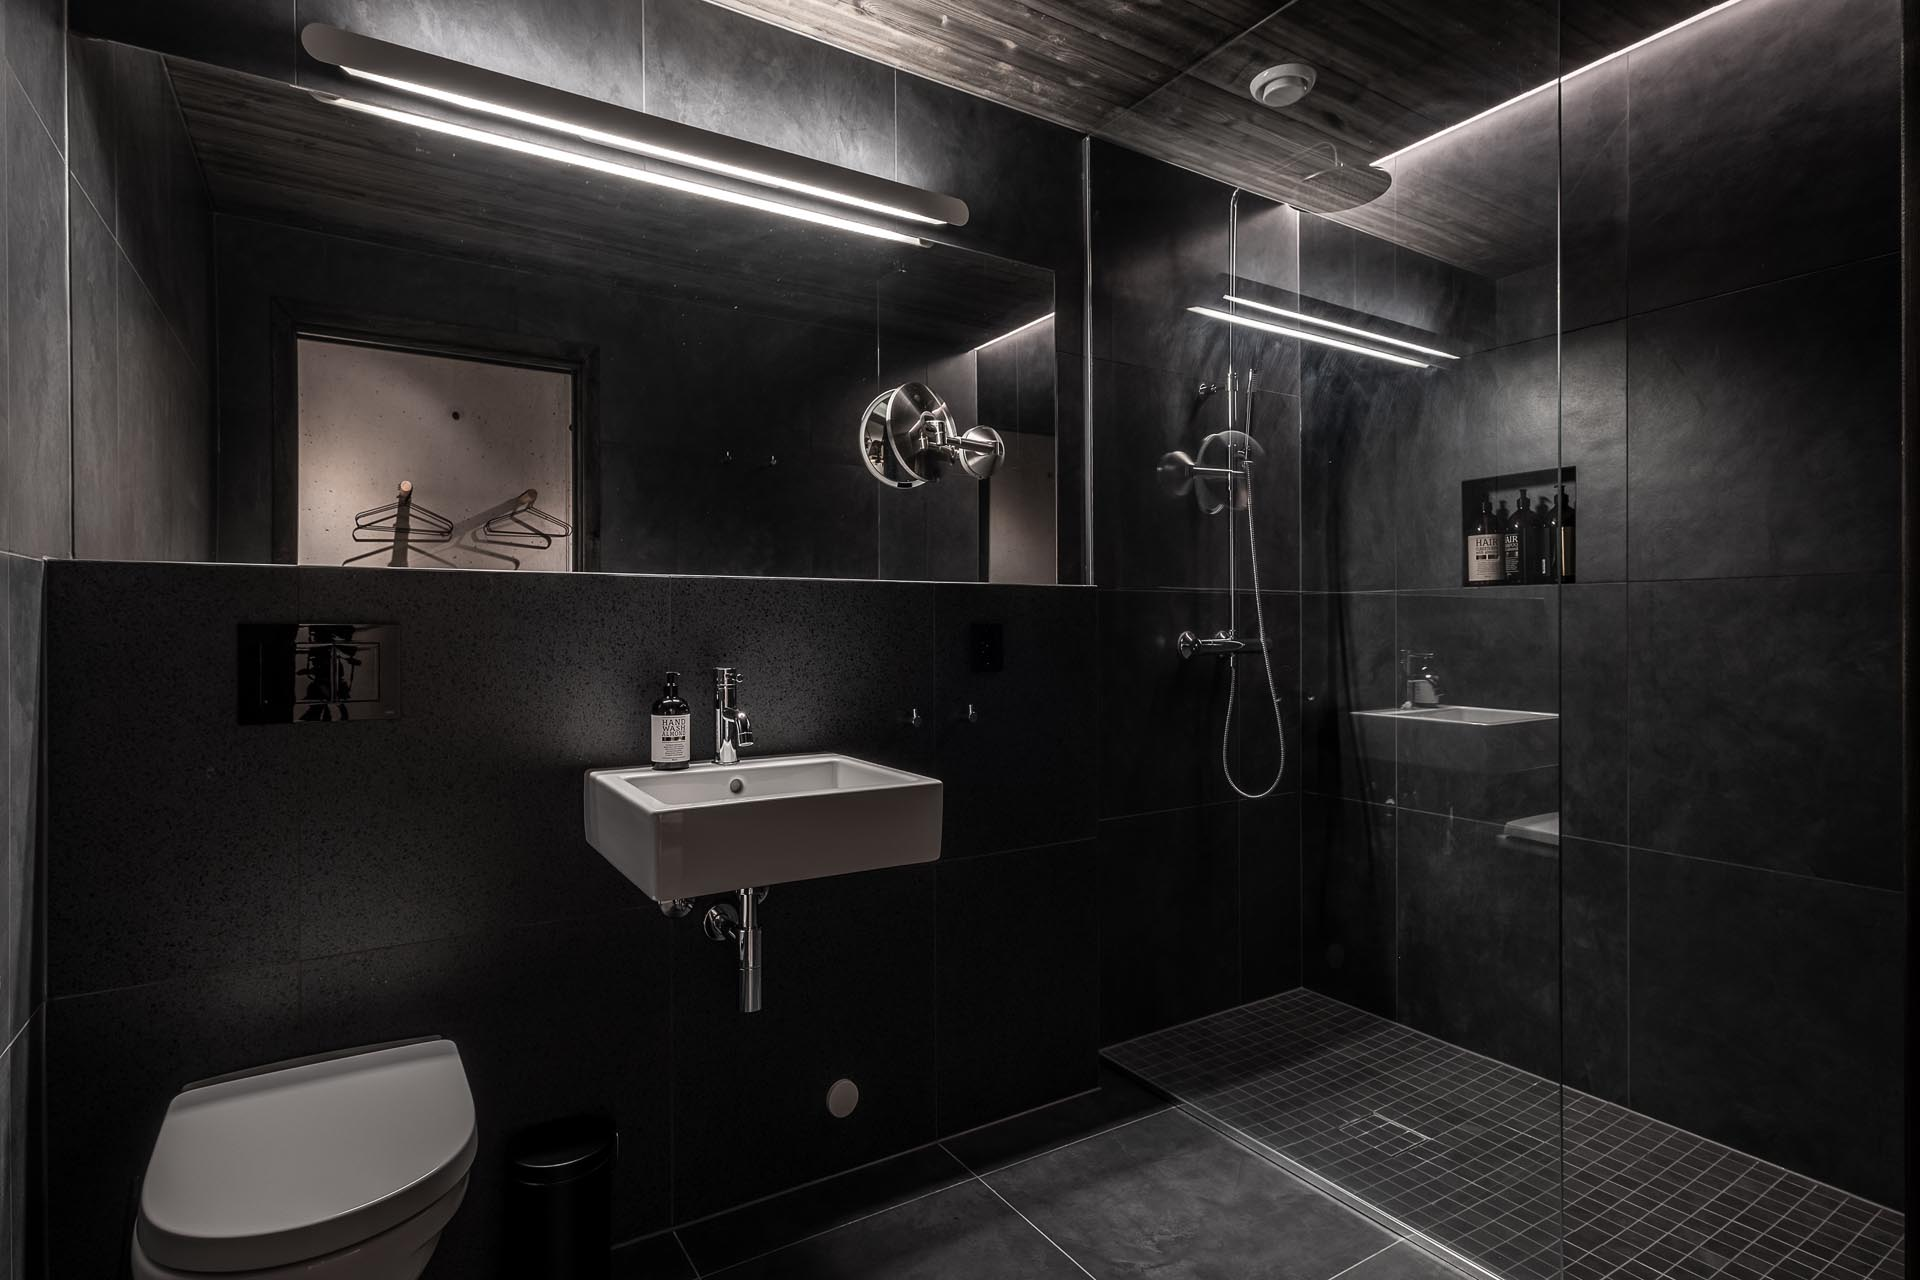 In this dark bathroom, large format black tiles and lighting have been used to create a dramatic appearance.